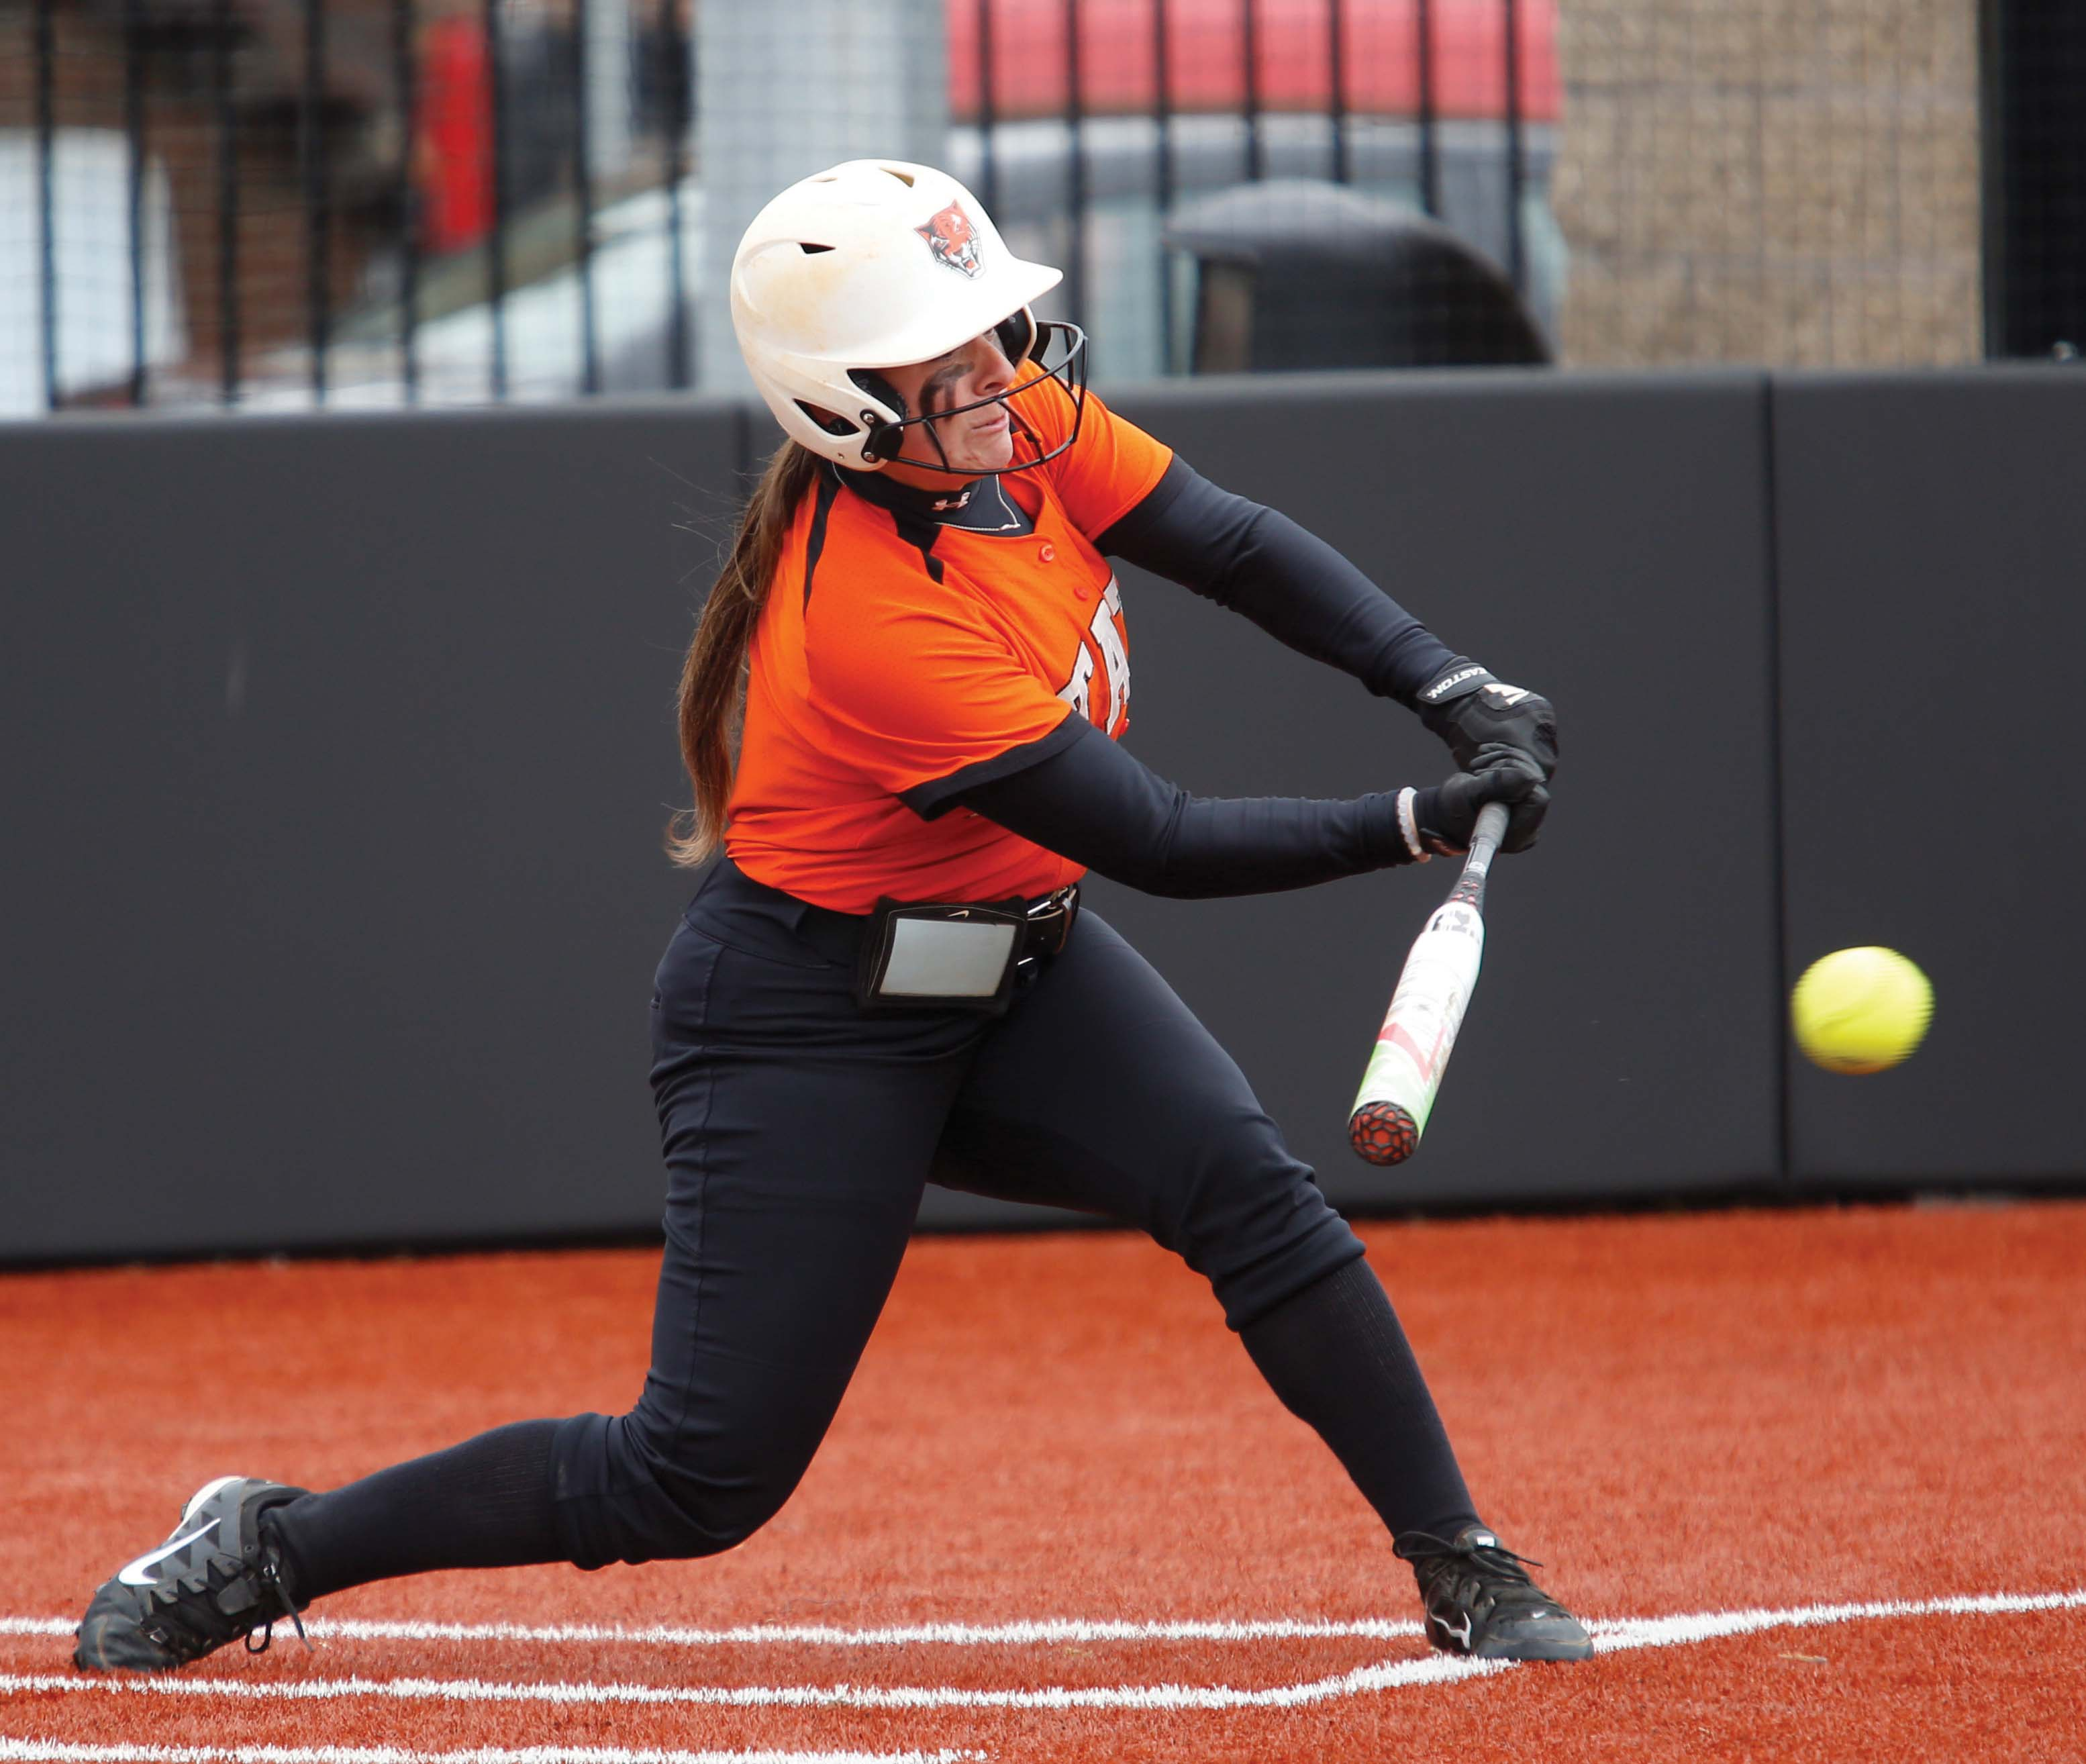 Buffalo State will host Oneonta for a double header April 10 with the first game at 11 a.m.